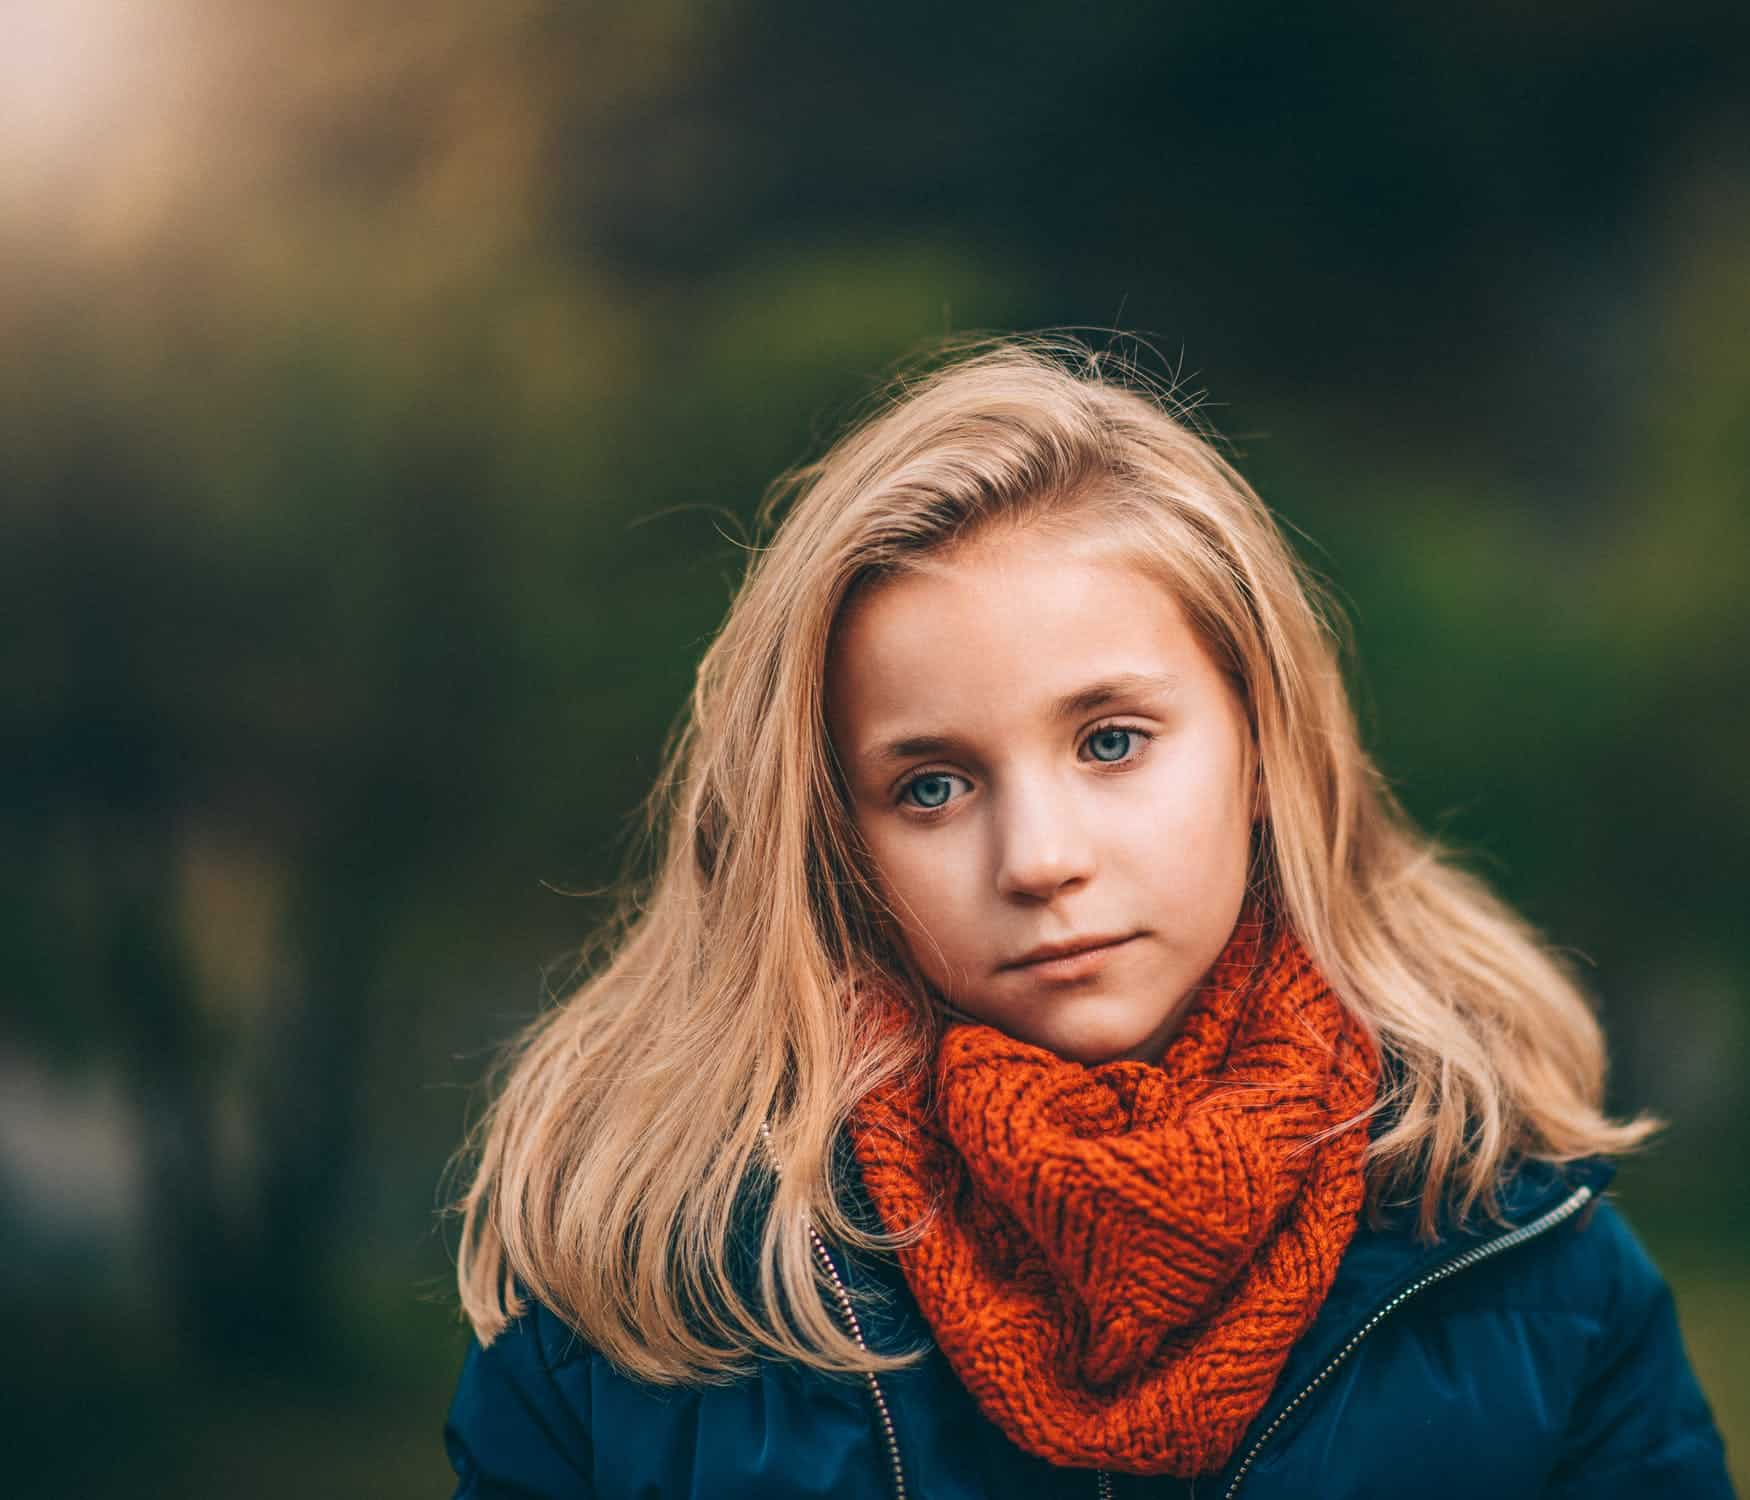 Home Alone for the First Time How to Help Your Child Feel Safe